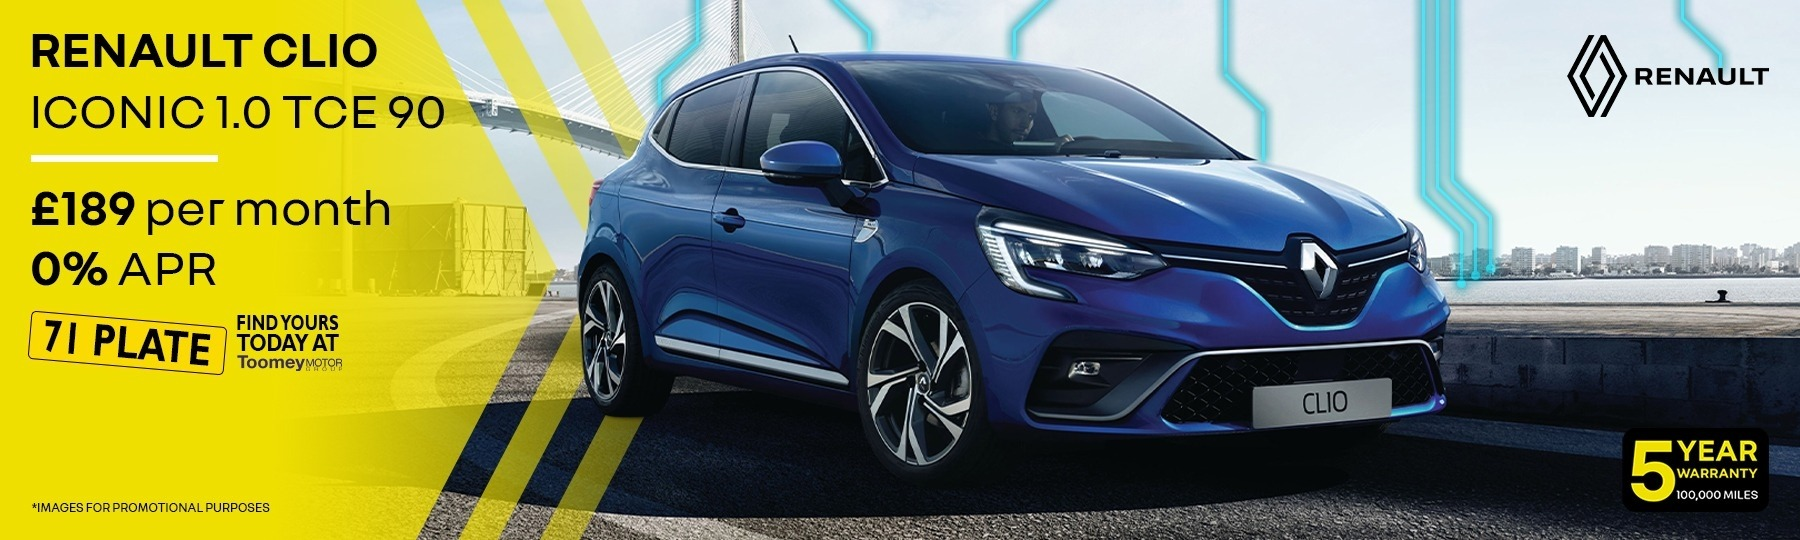 renault Clio New Car Offer